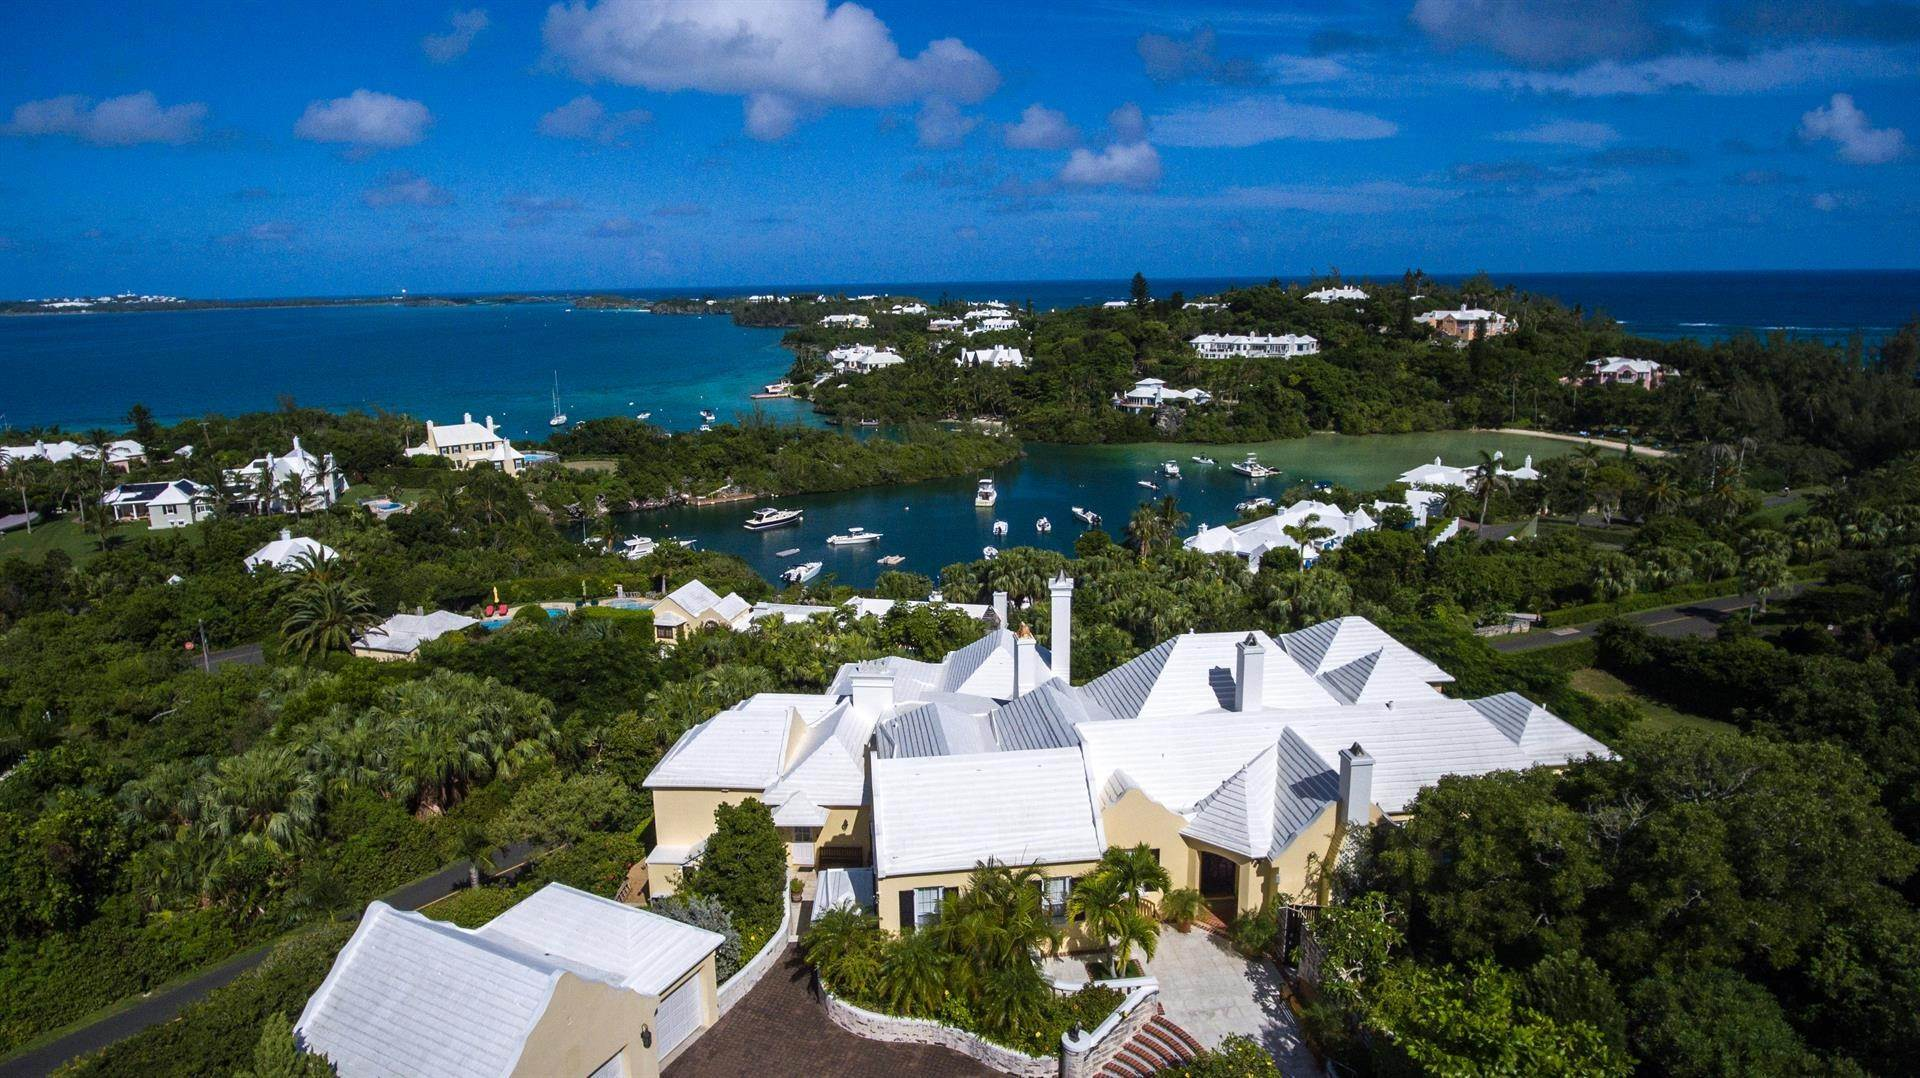 31. Estate for Sale at Atlanta By The Sea & Jolly Roger In Tucker's Town Atlanta By The Sea & Jolly Roger In Tucker's Town, 2 & 4 Mid Ocean Drive,Bermuda – Sinclair Realty